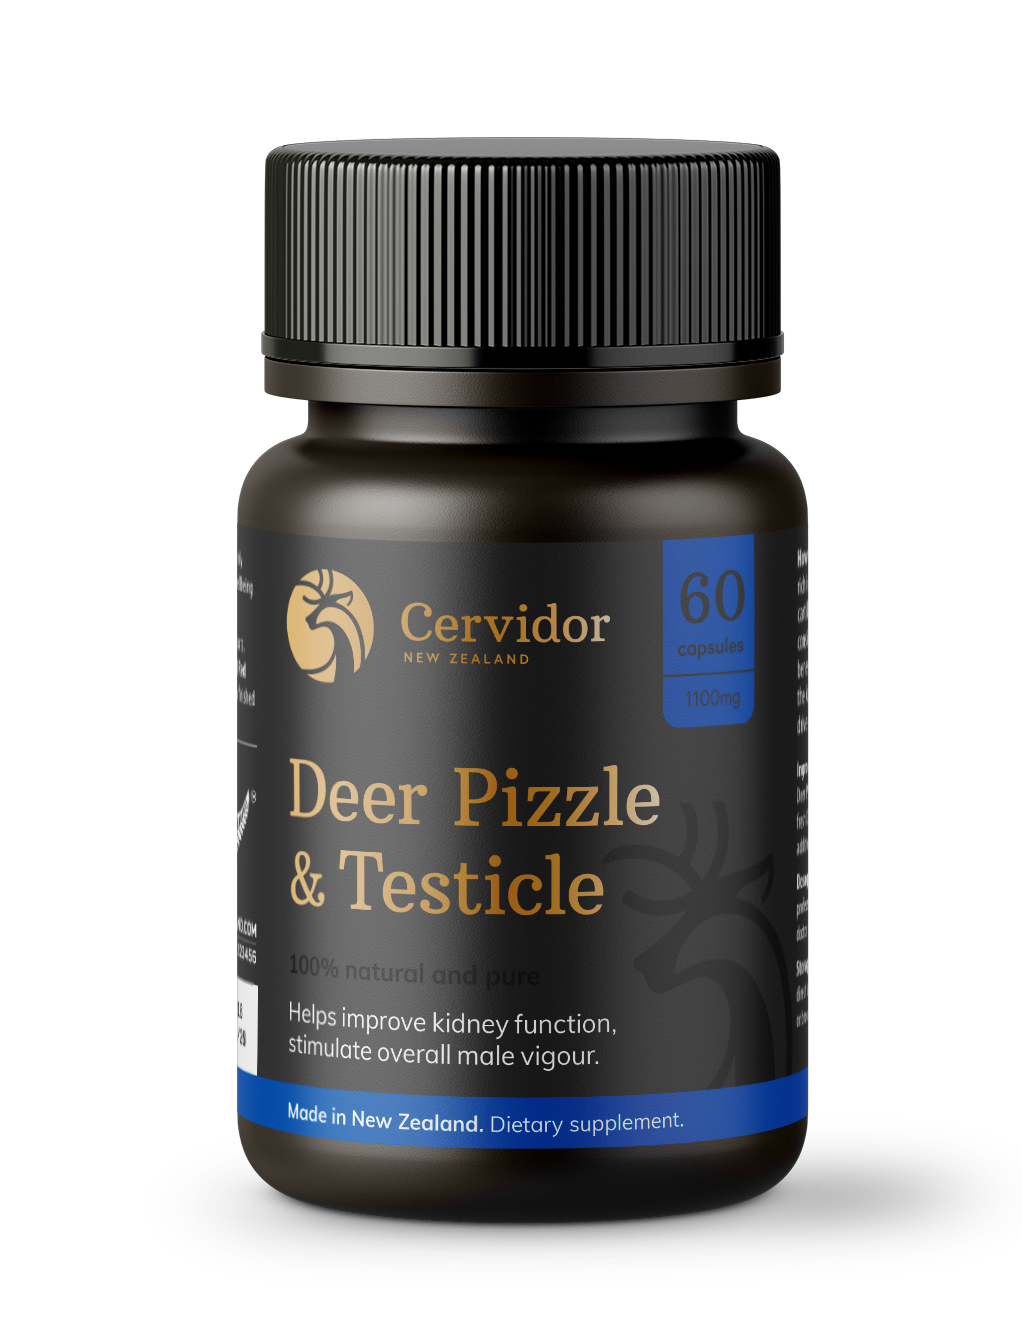 New Zealand deer pizzle and testicle capsules